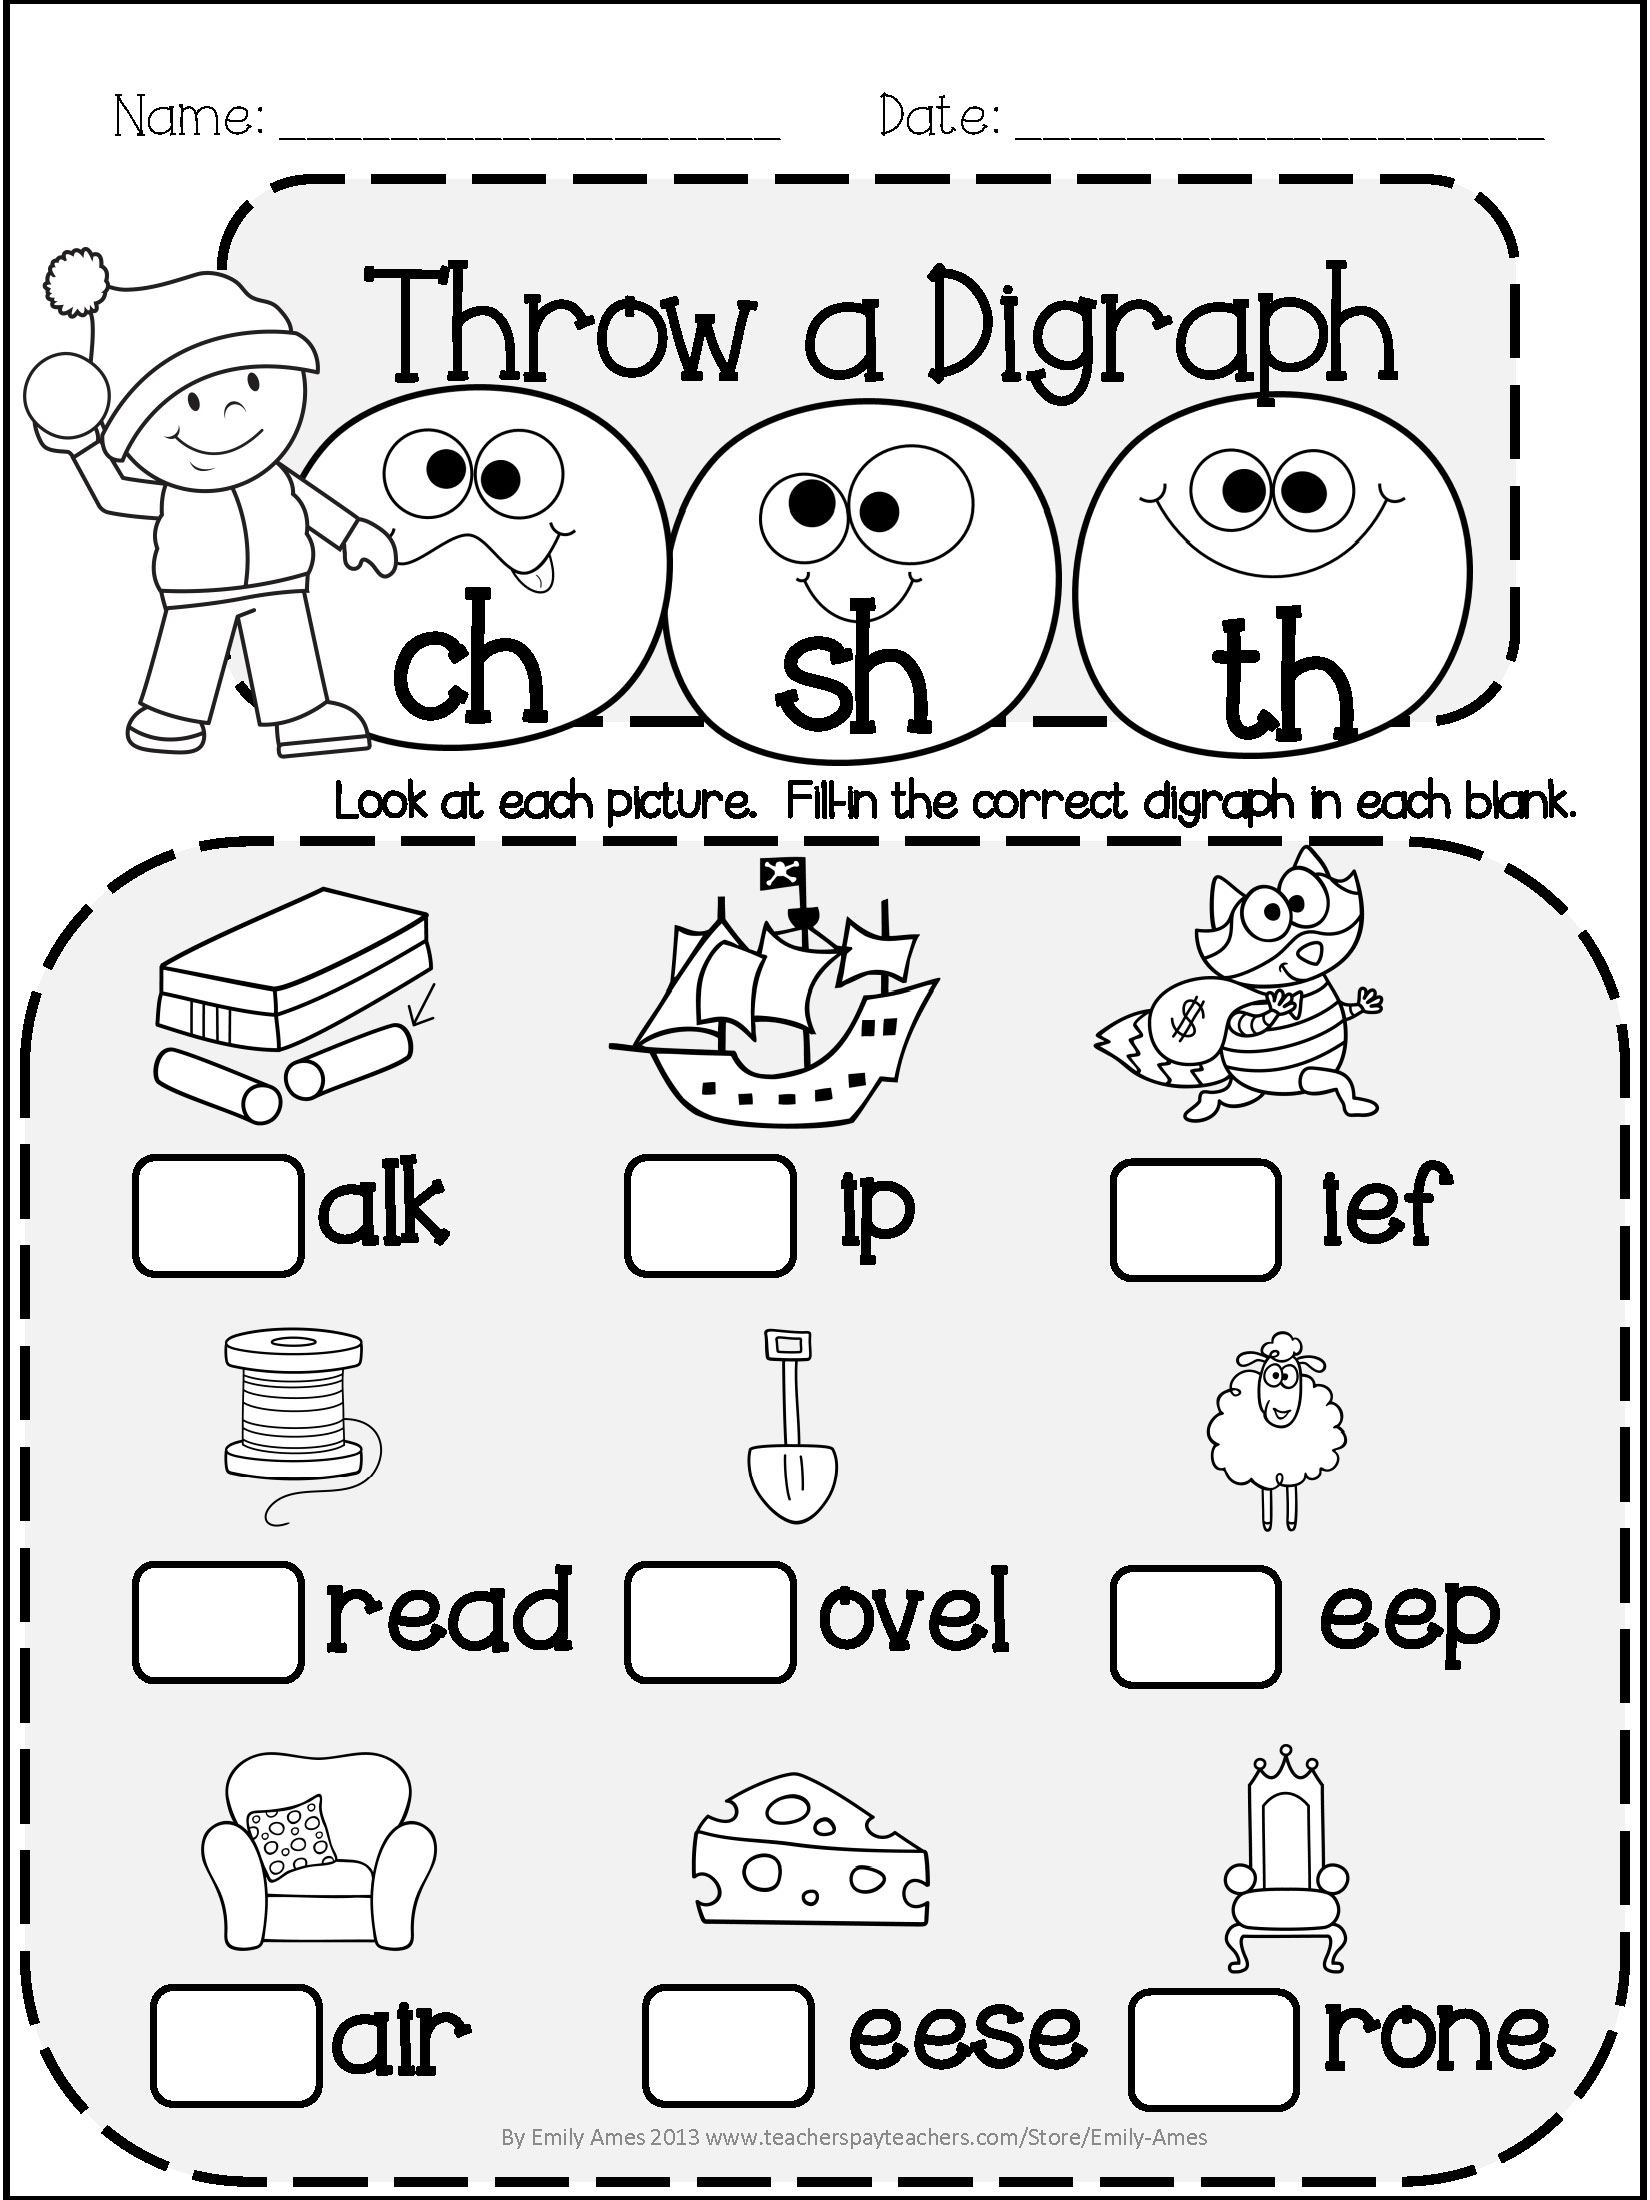 Ou Ow Worksheets 3rd Grade Maggie Clement Maggiecle Ou Ow Phonics Worksheets